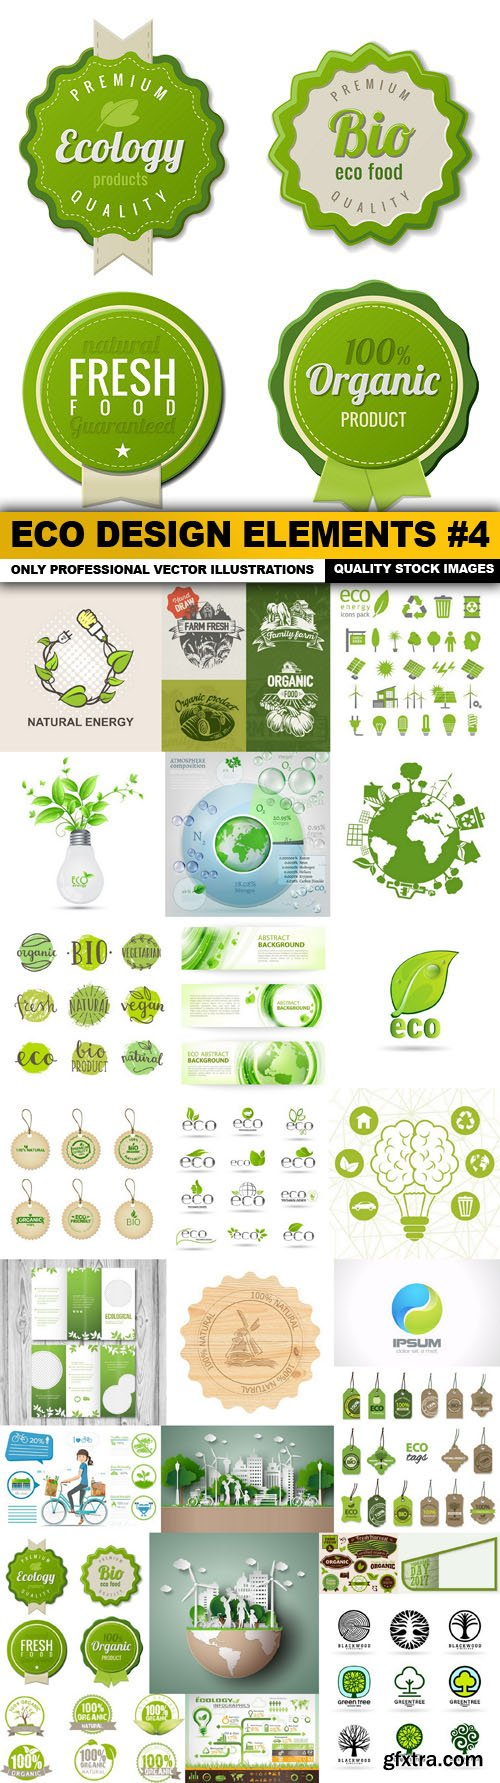 ECO Design Elements #4 - 25 Vector